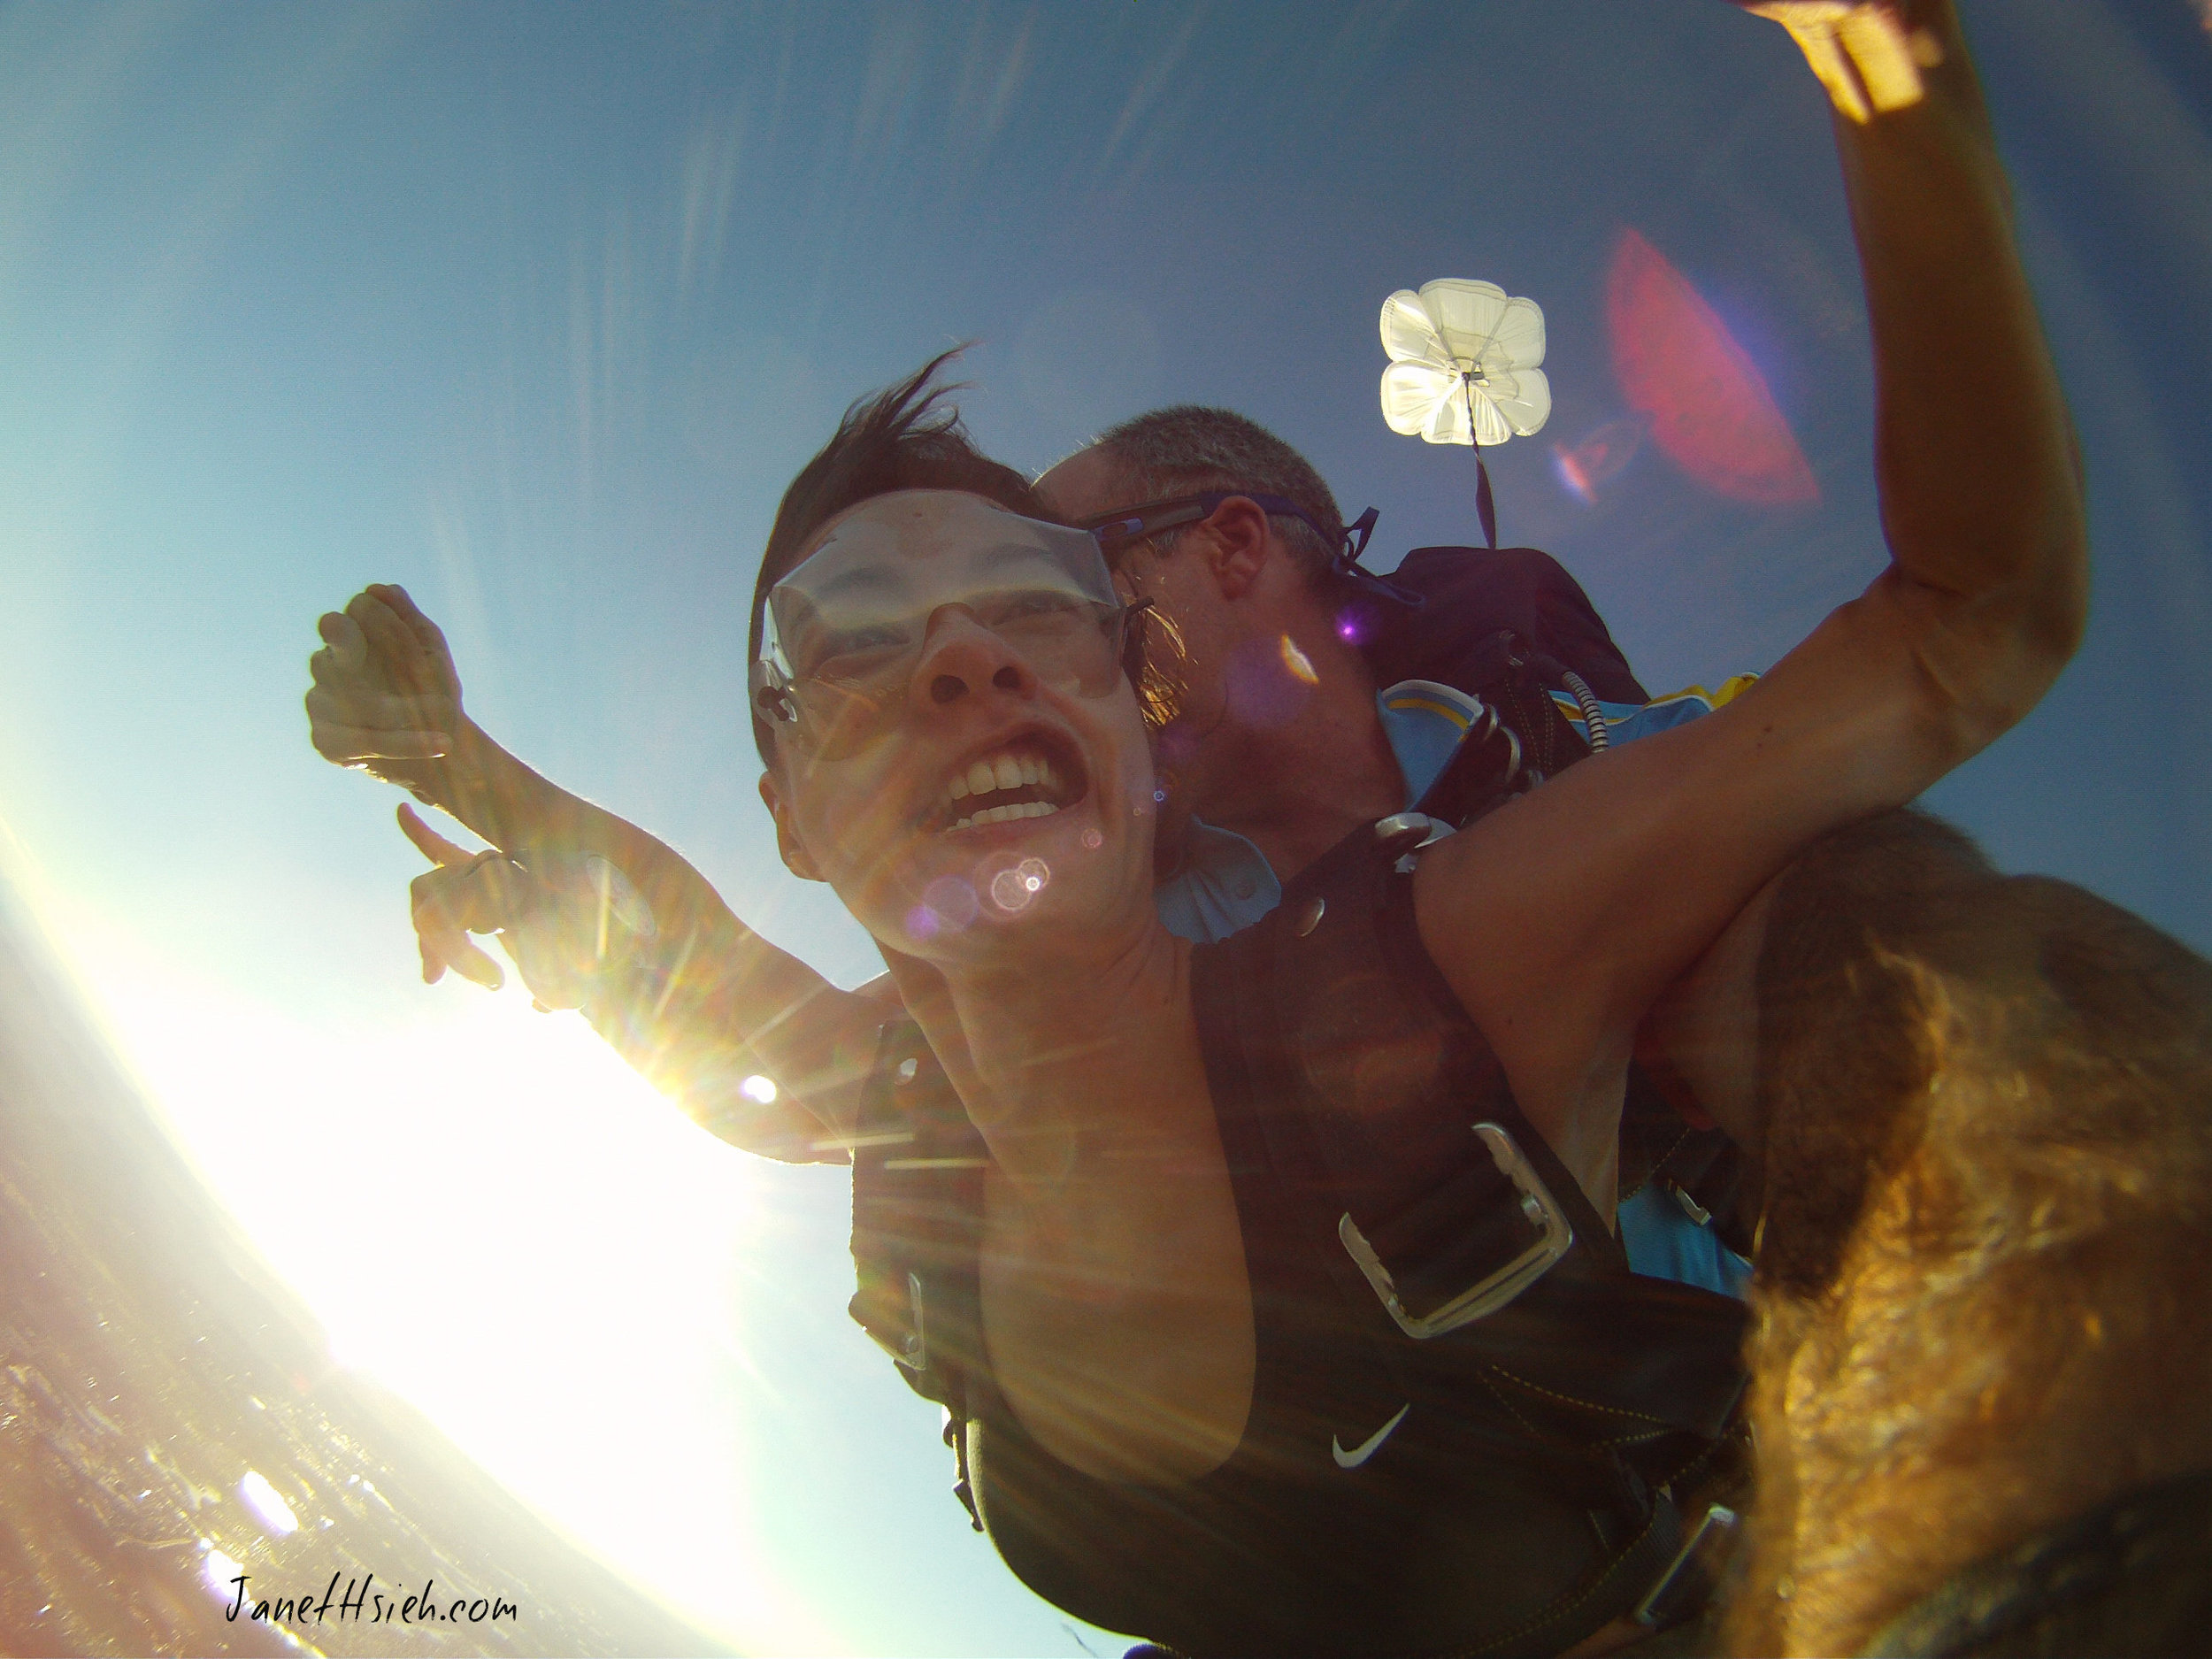 Skydiving - one of my many loves